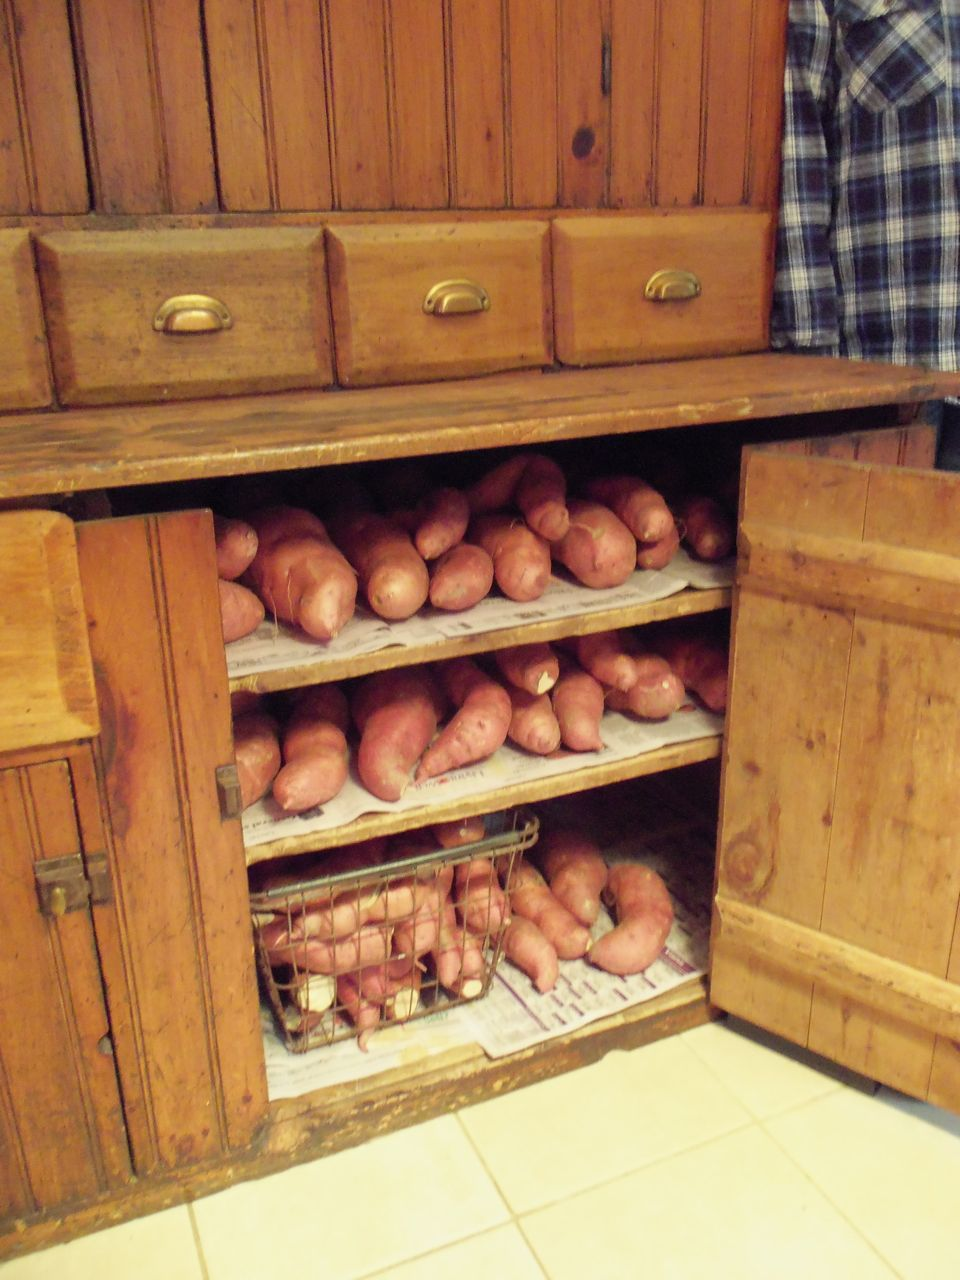 The Deliberate Agrarian: Growing Sweet Potatoes in My Northern Garden